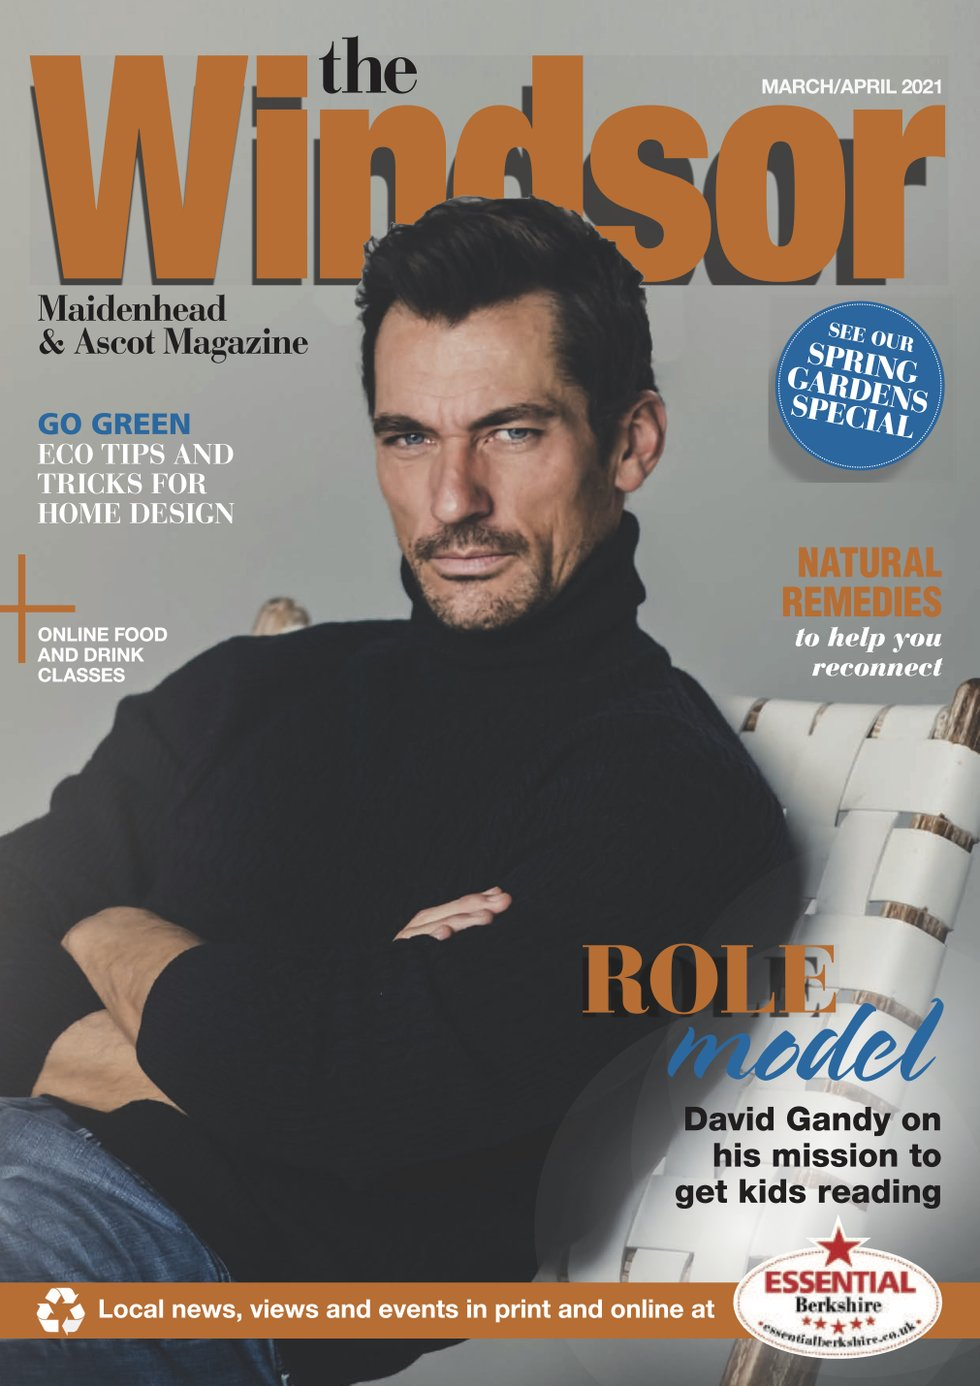 The Windsor Magazine FC April 2021